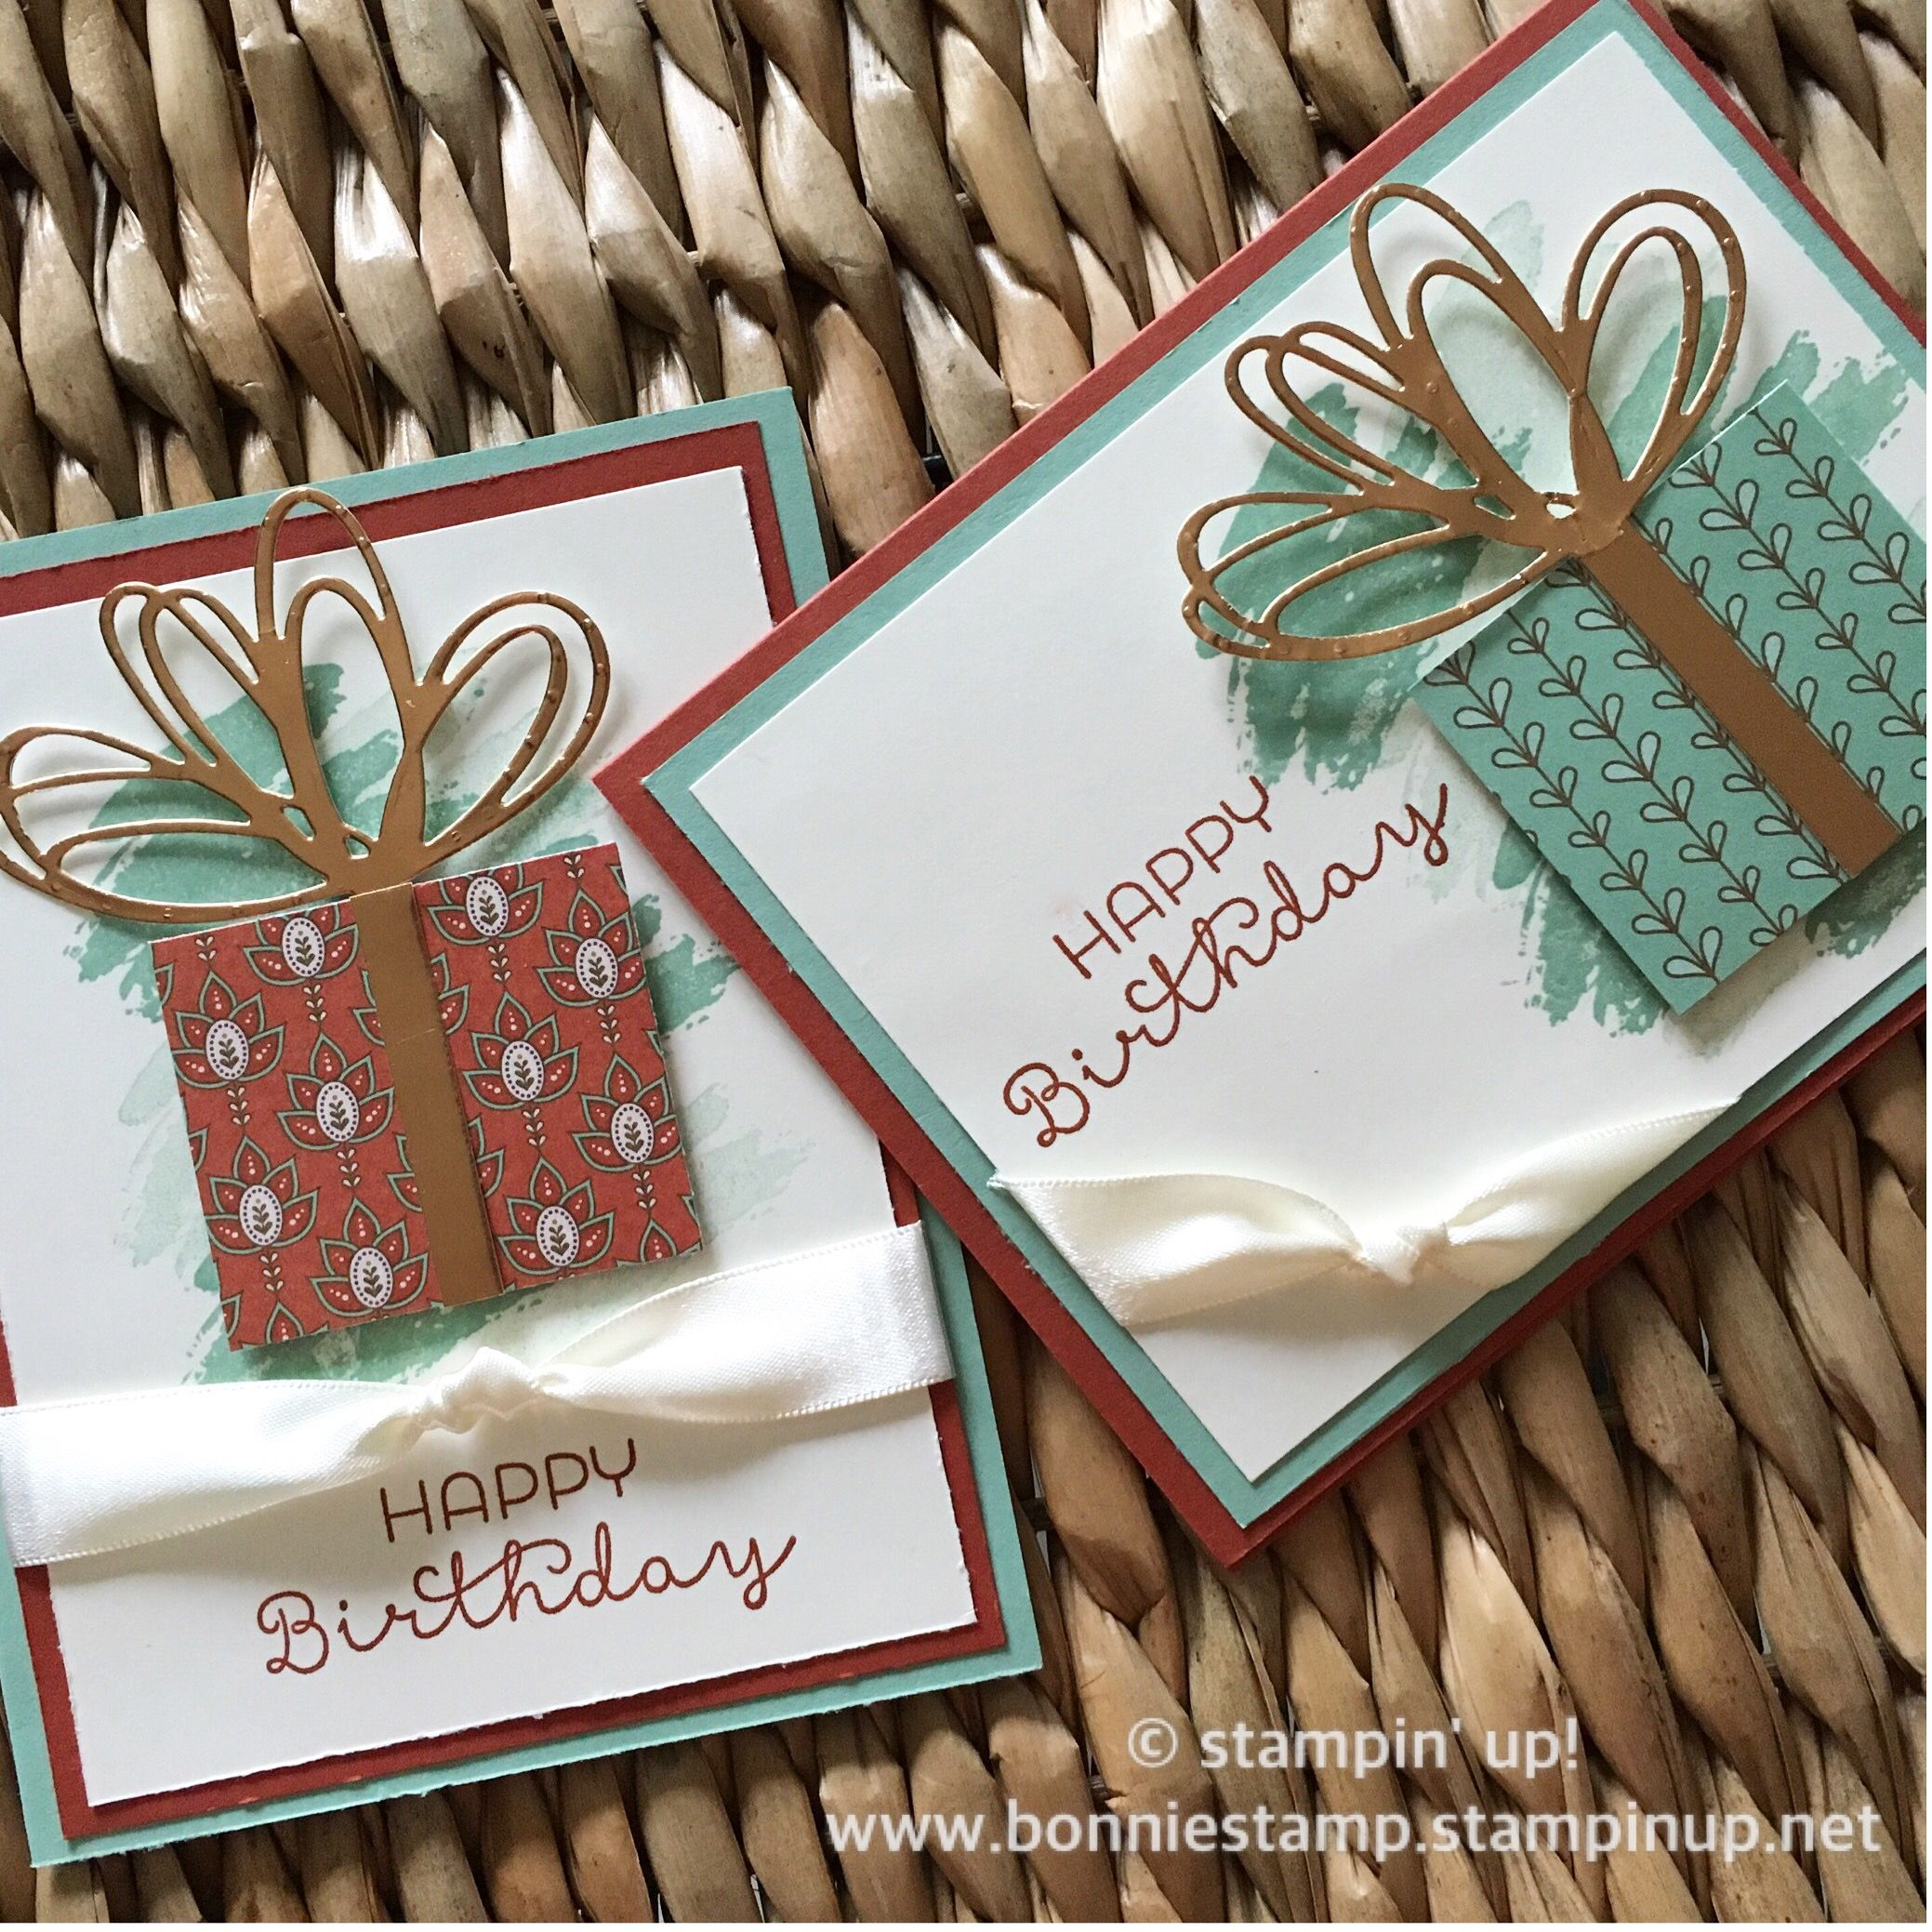 New in the Stampin' Up holiday catalog, copper foil sheets add just the right shine!